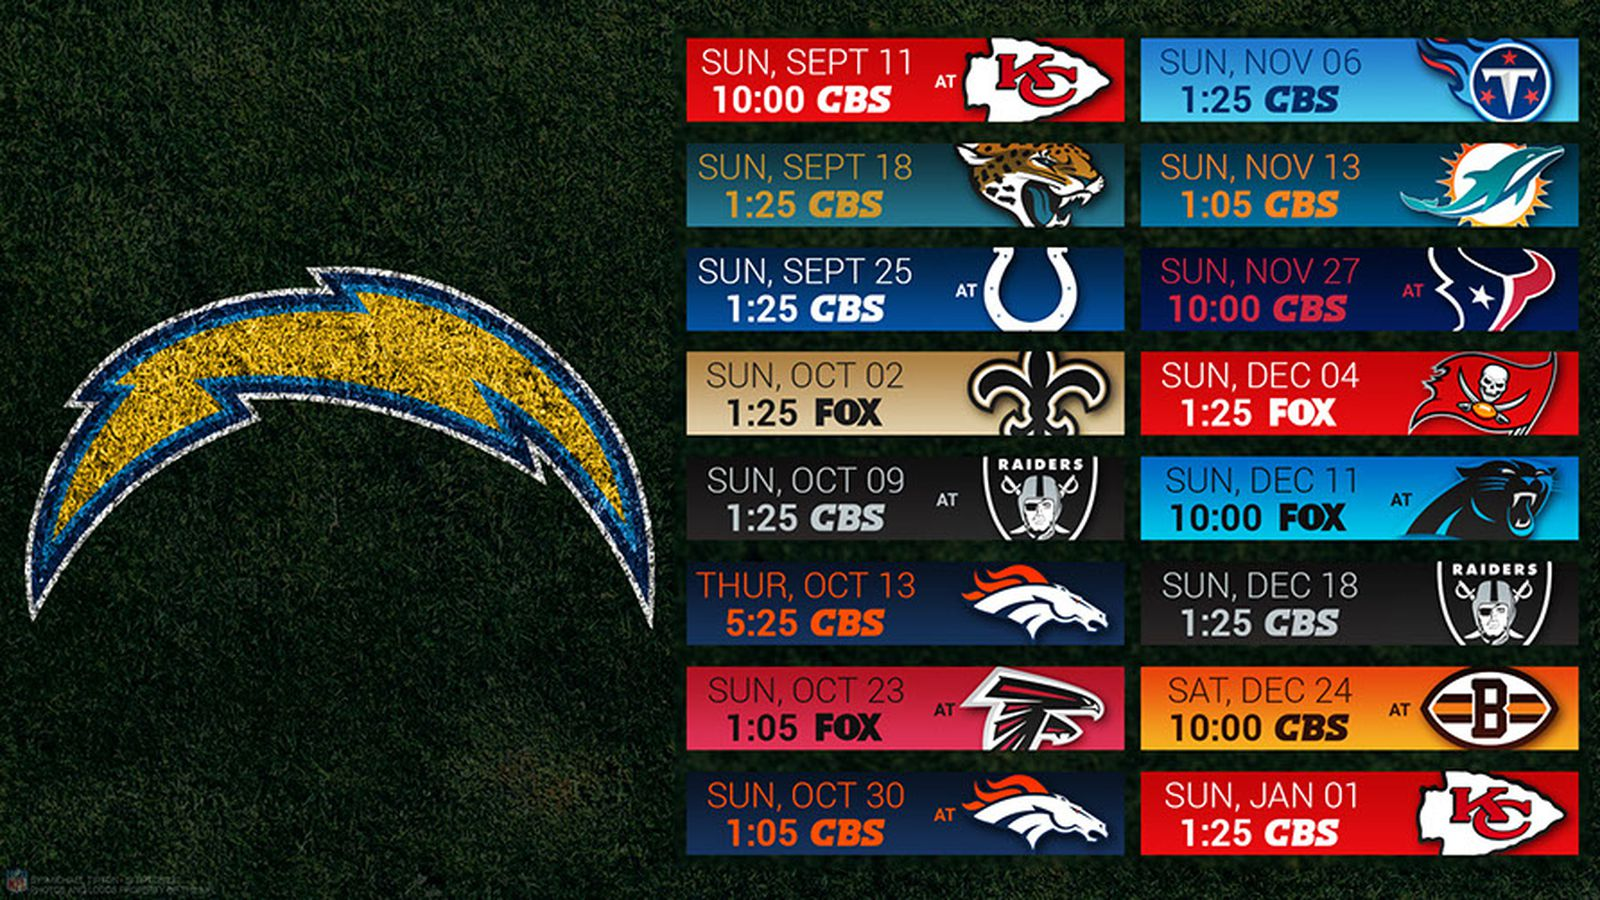 Chargers 2016 Schedule Wallpaper Bolts From The Blue